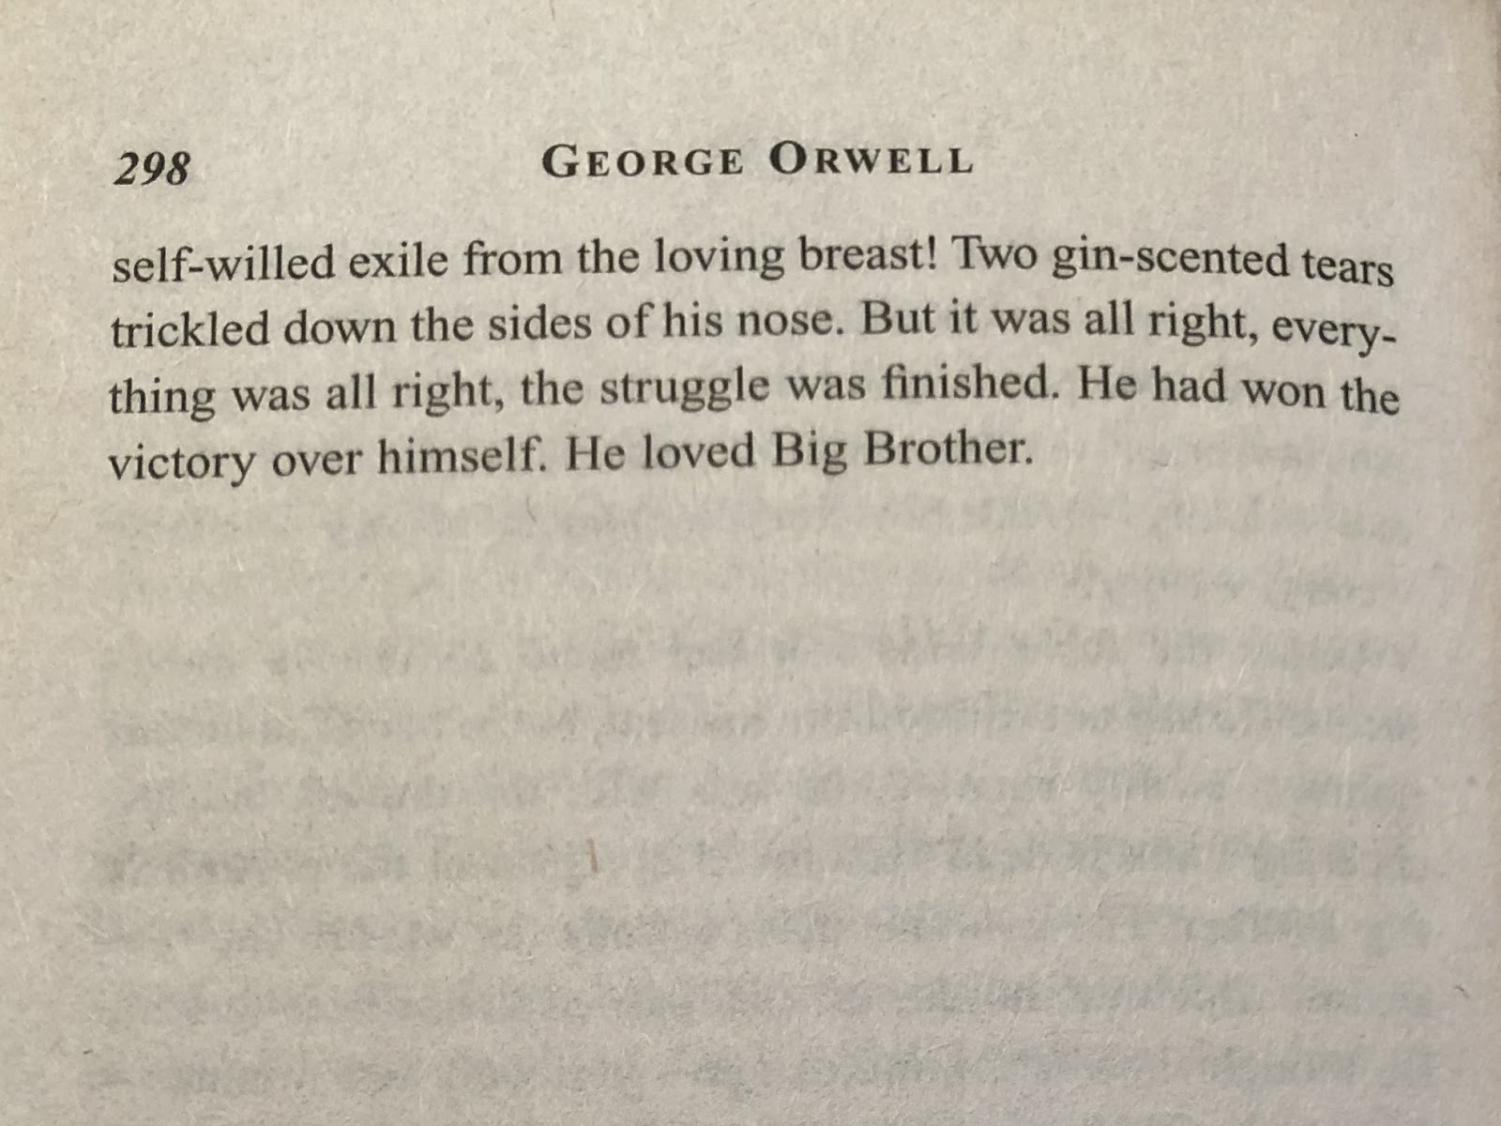 """An excerpt from page 298 of """"1984"""" by George Orwell."""